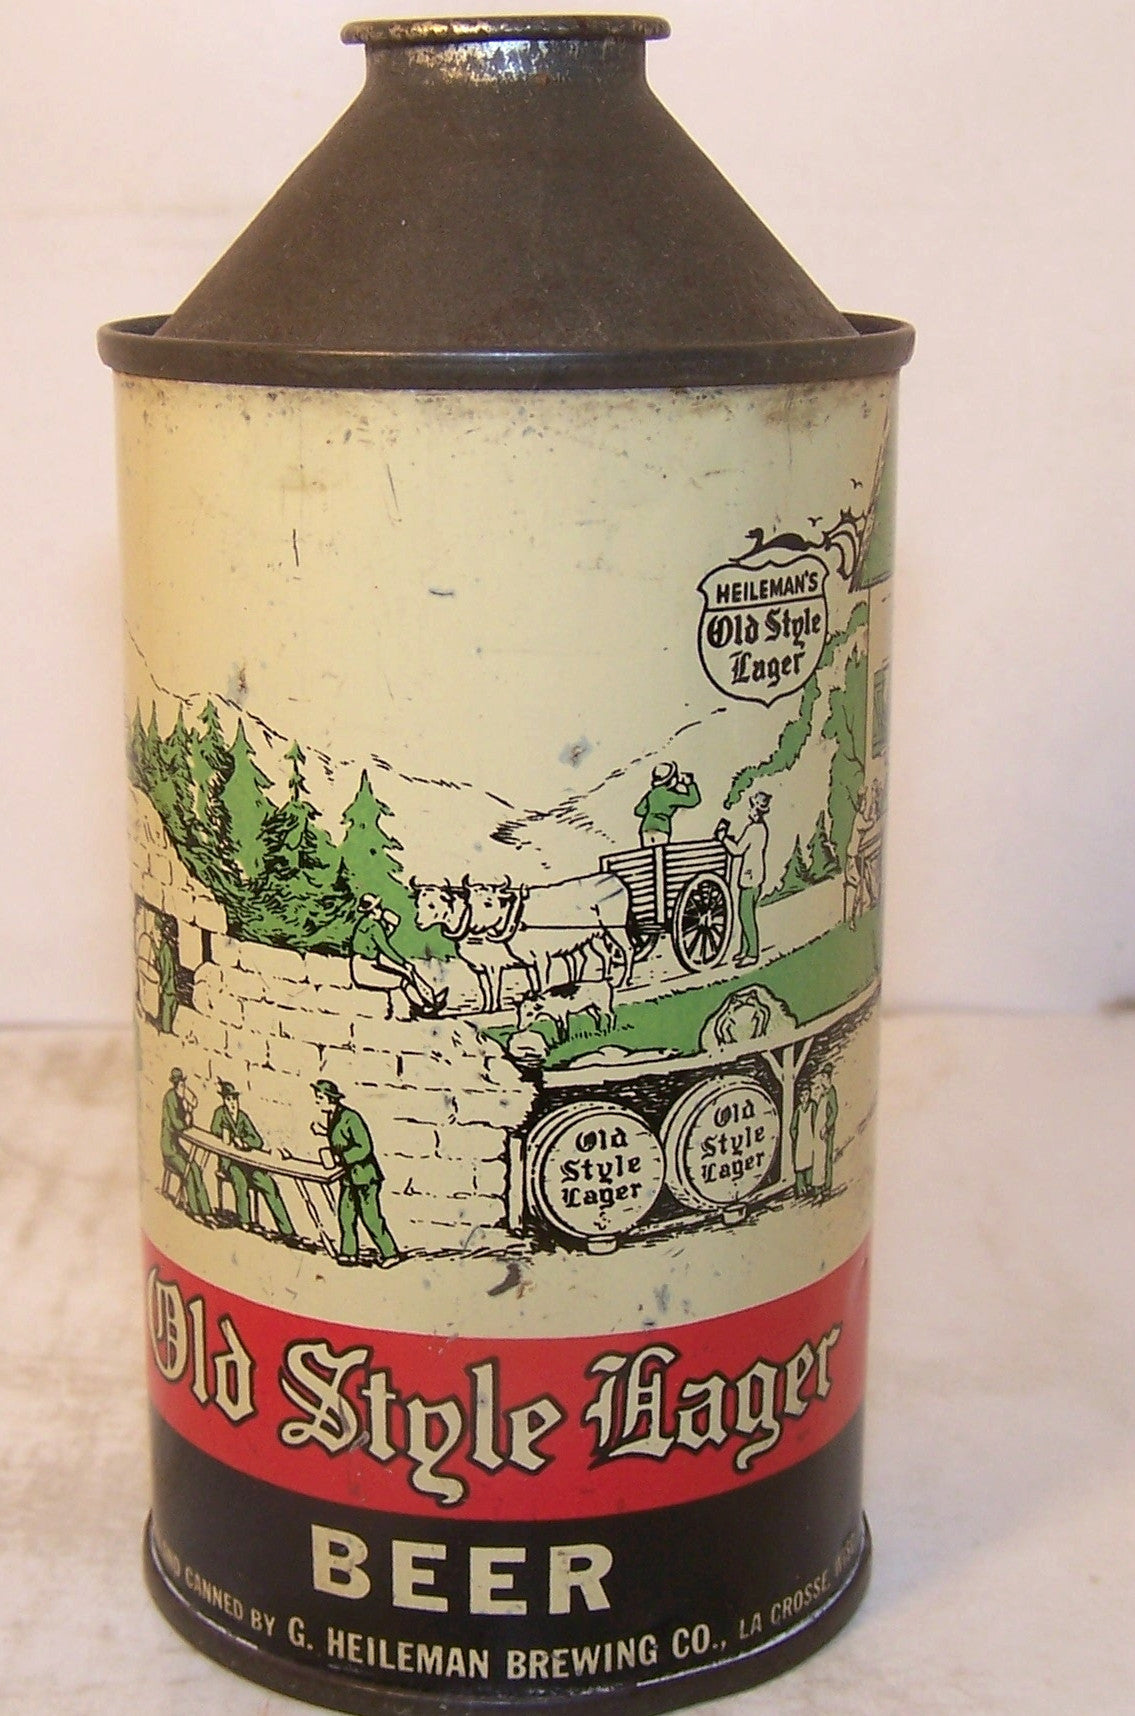 Old Style Lager Beer, USBC 177-17, Grade 1-sold5/8/15 $100